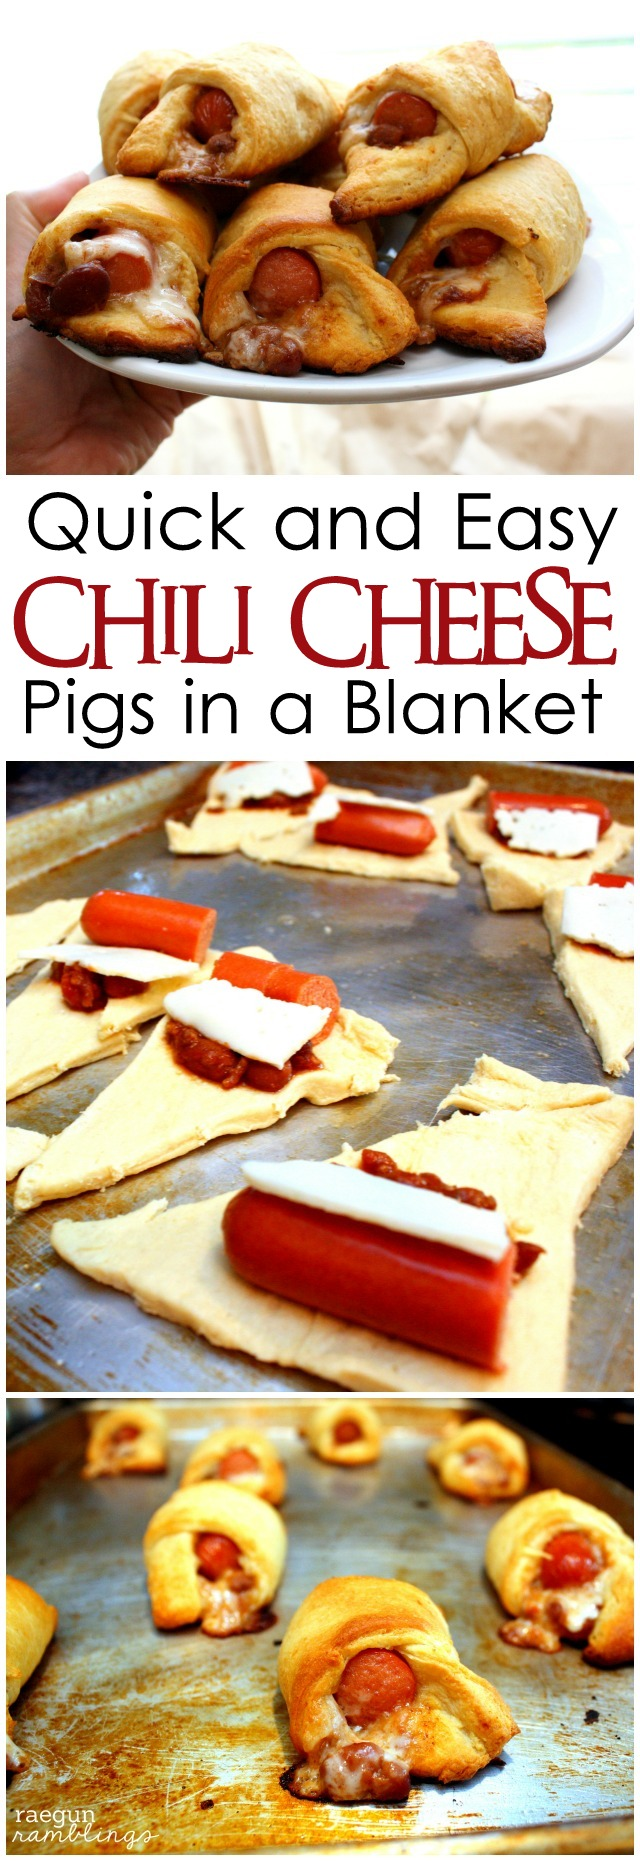 Chili Cheese Pigs in a Blanket perfect quick meals, snacks or super bowl party food - Rae Gun Ramblings